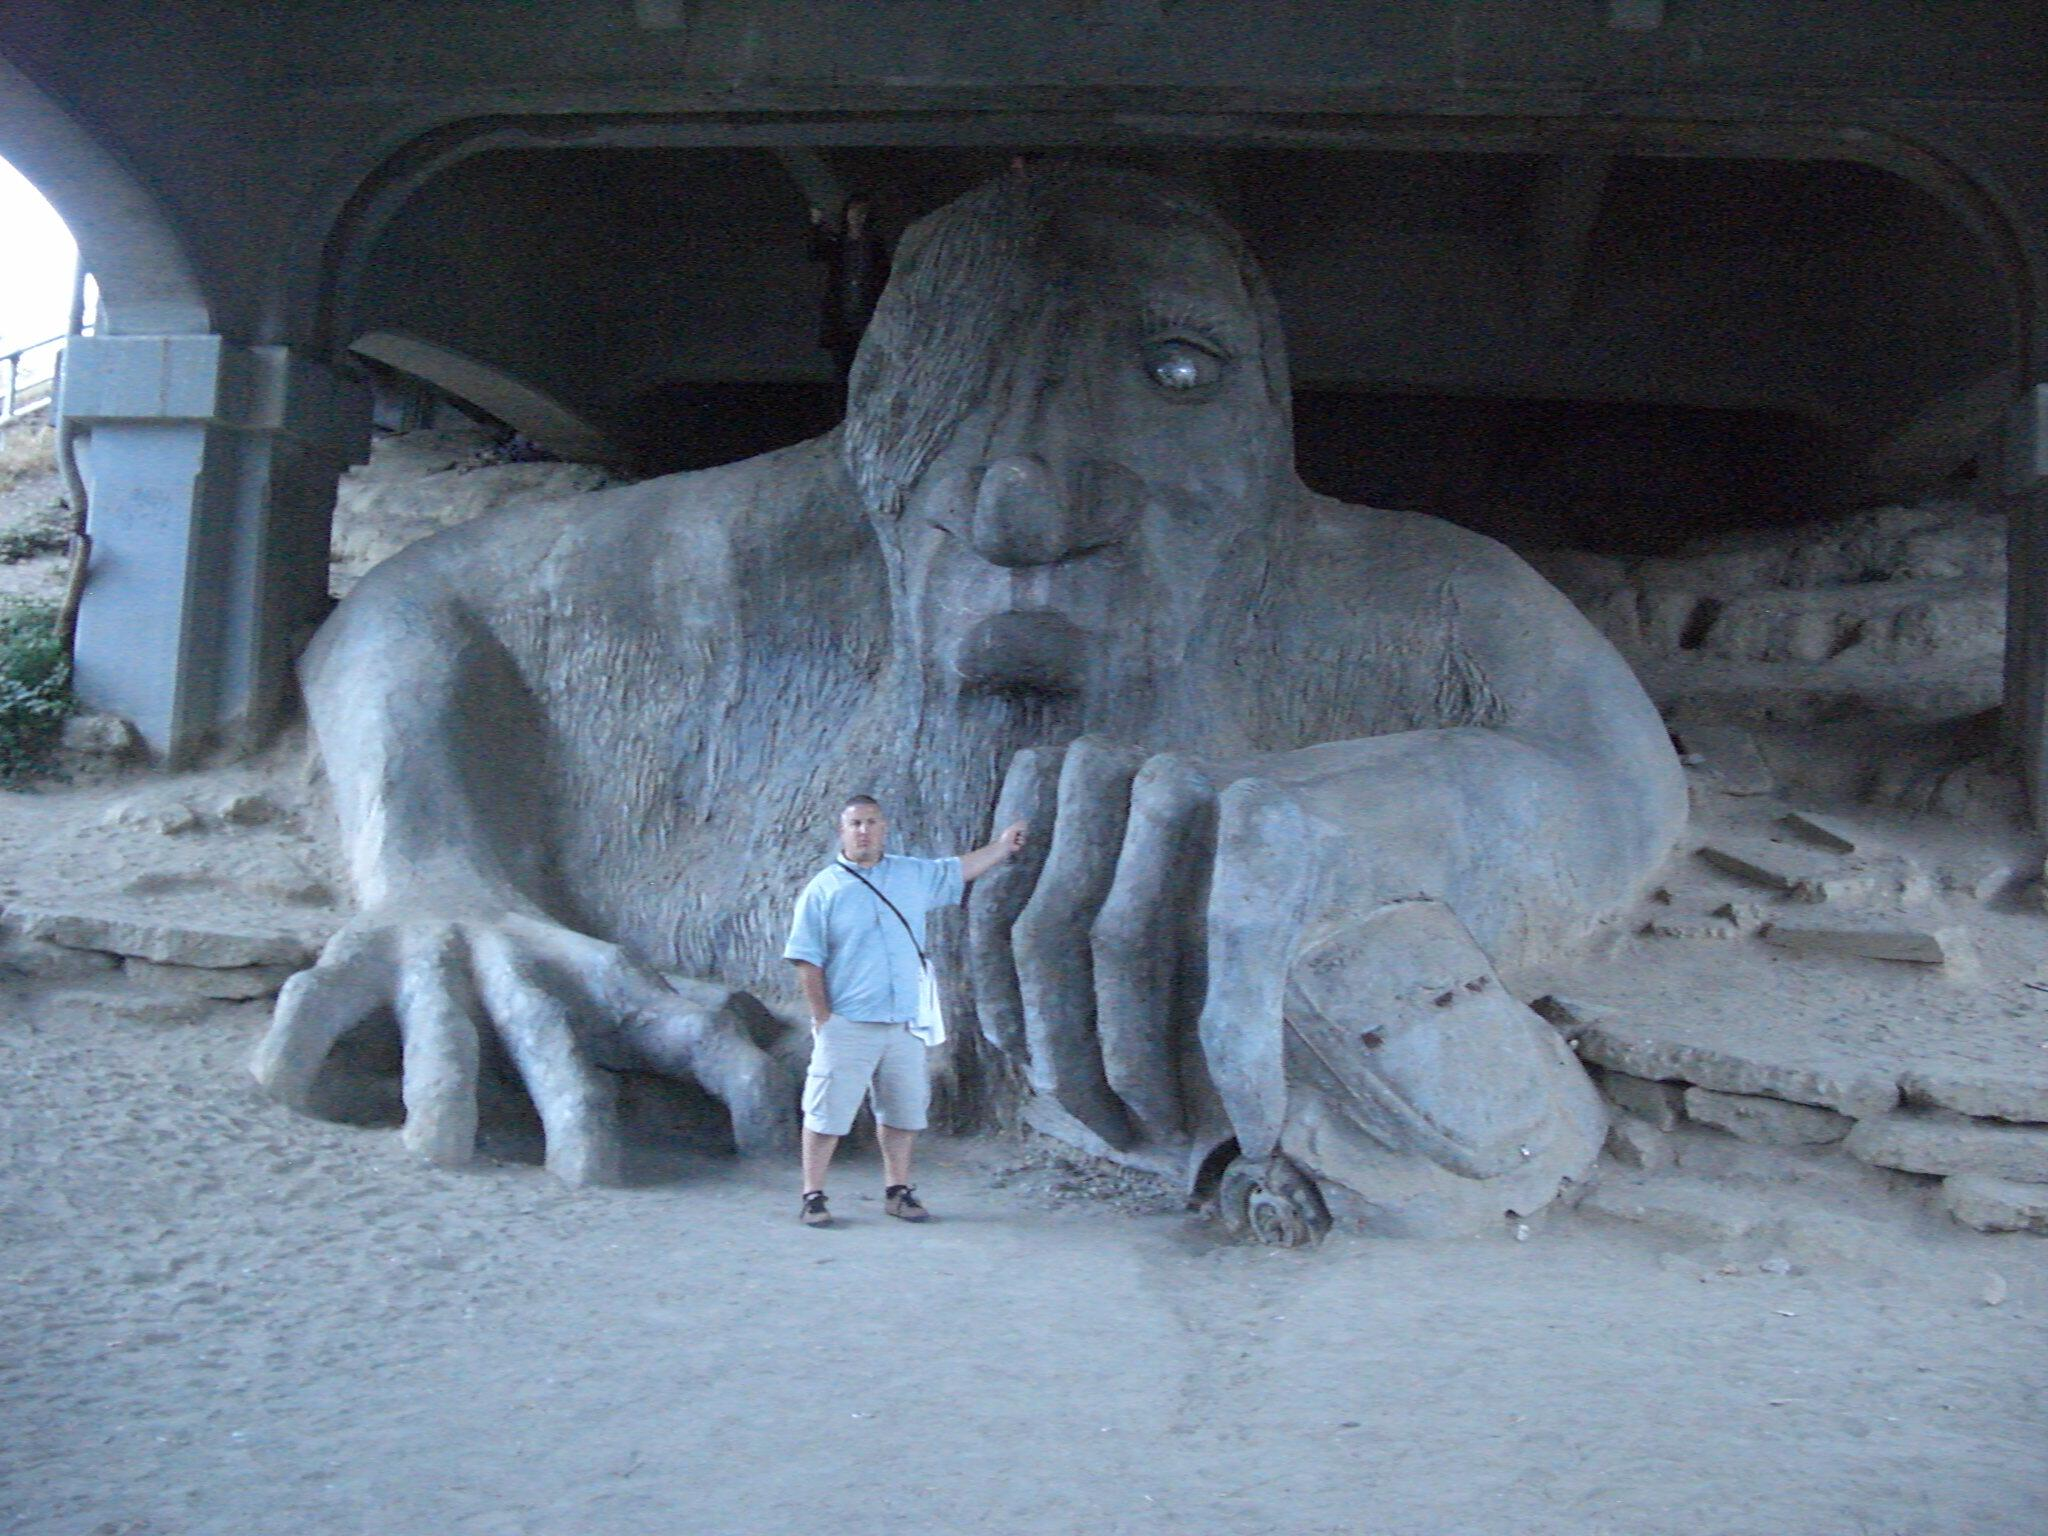 Iggy back at the Fremont Troll